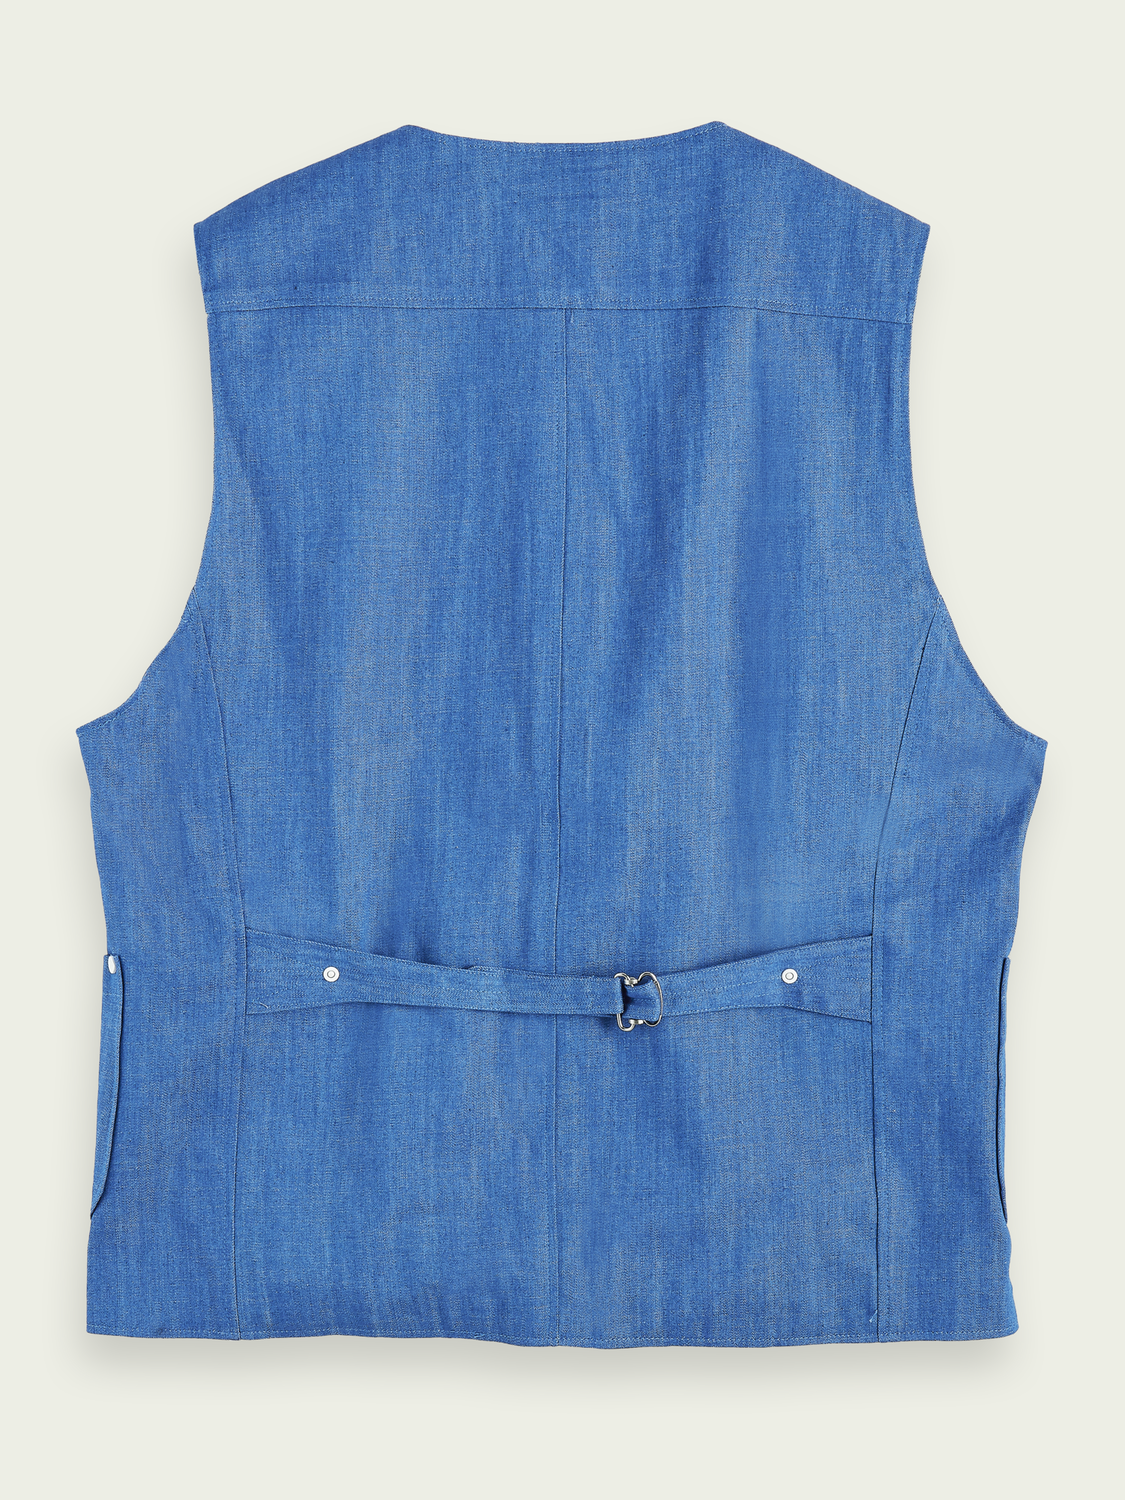 Men 100% cotton denim gilet